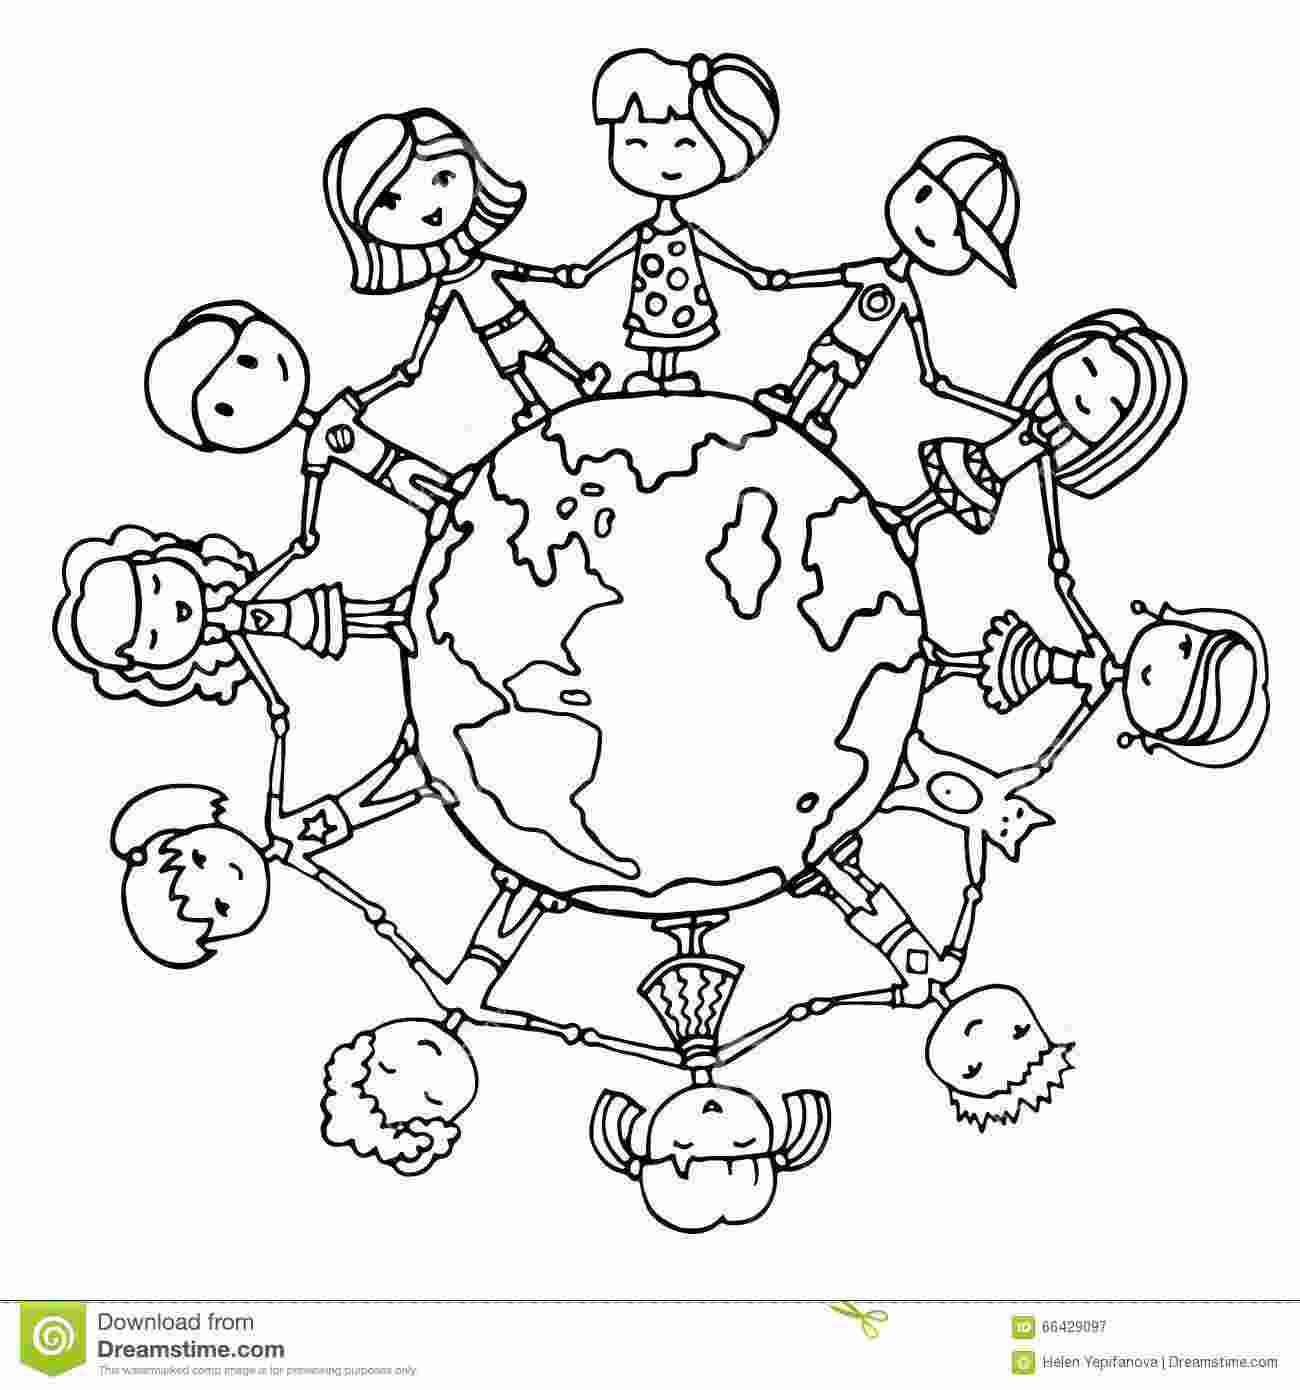 Mondo World Angels Friends Coloring Pages Coloring Pages Precious Moments Coloring Pages Earth Day Coloring Pages